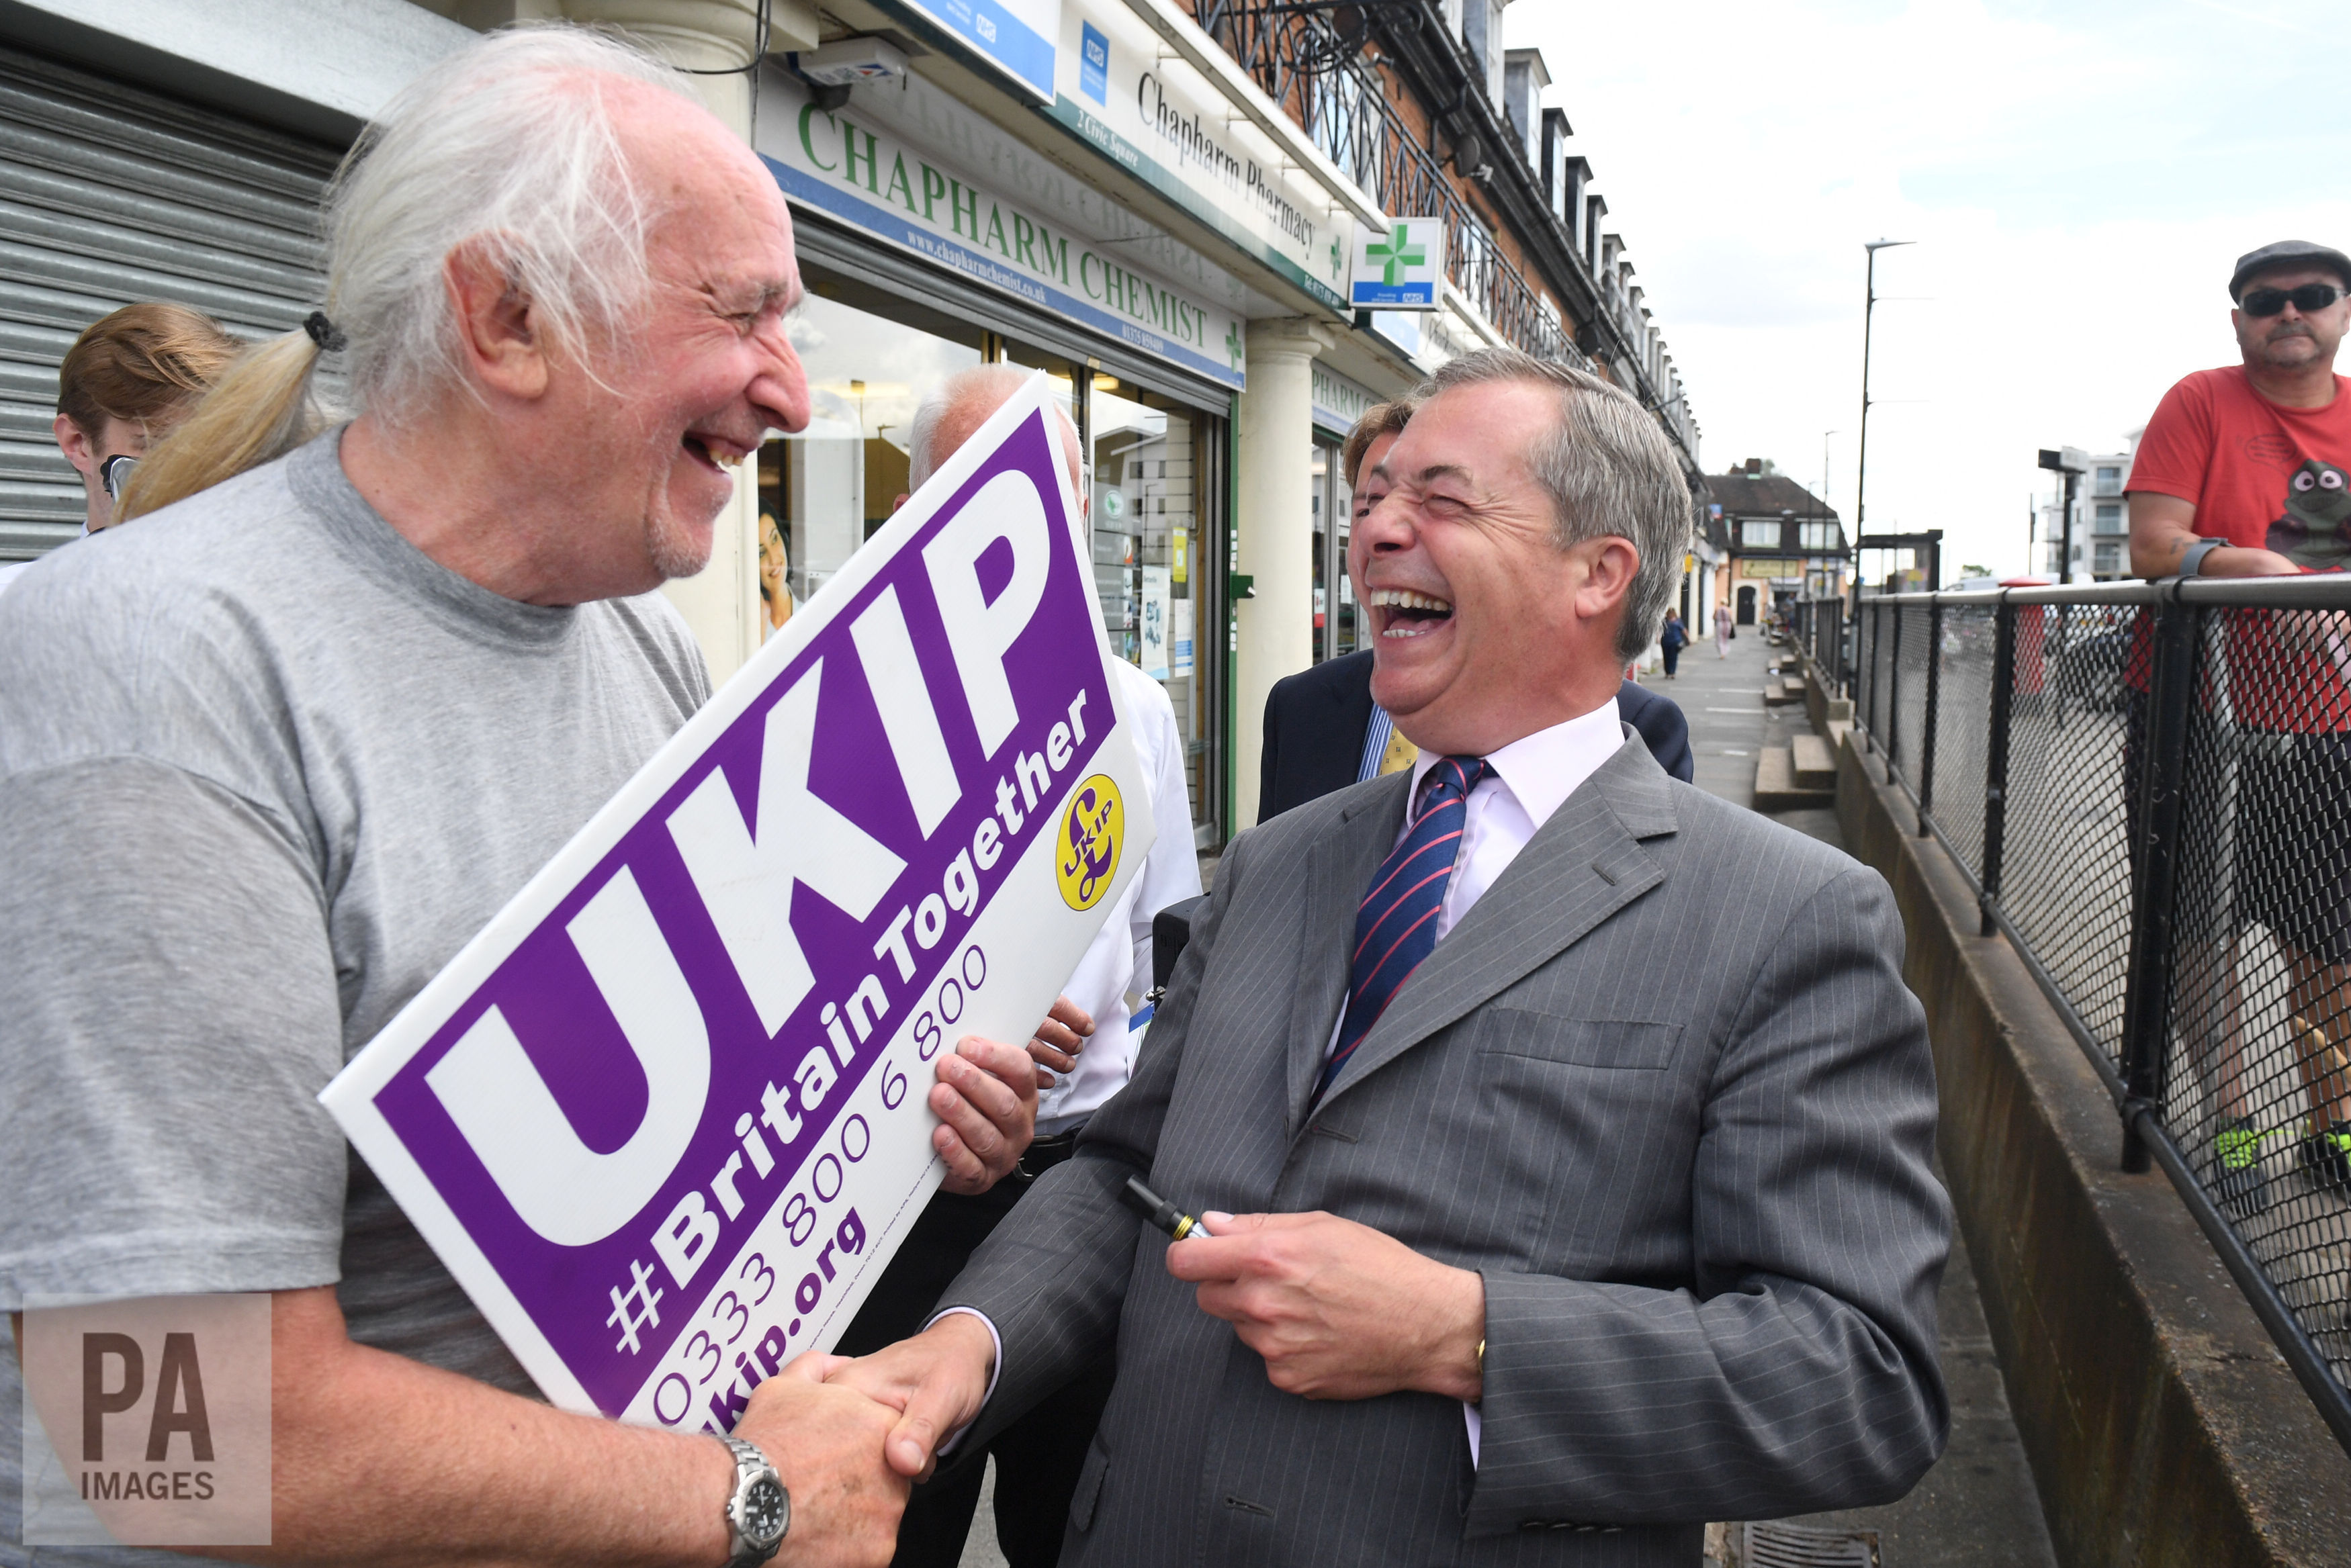 UKIP Warrington believes leader Henry Bolton's position 'has become untenable'